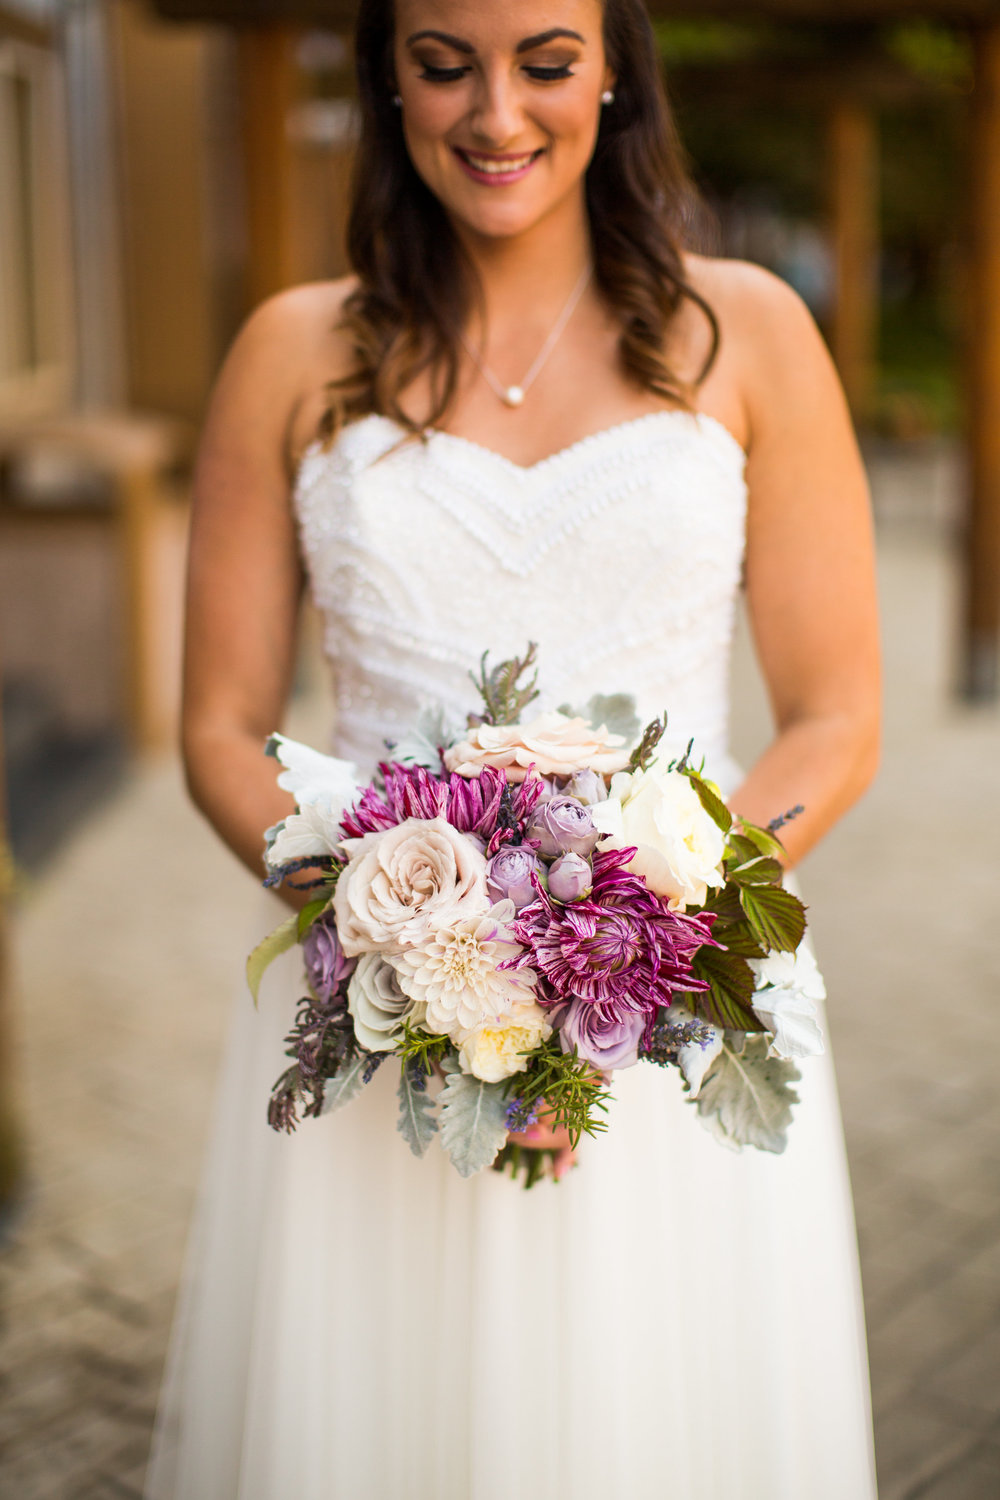 Seattle Wedding Planner, Wedding Wise | Ciccarelli Photography | Edgewater Hotel Wedding | Purple and cream wedding bouquet | Bridal bouquet